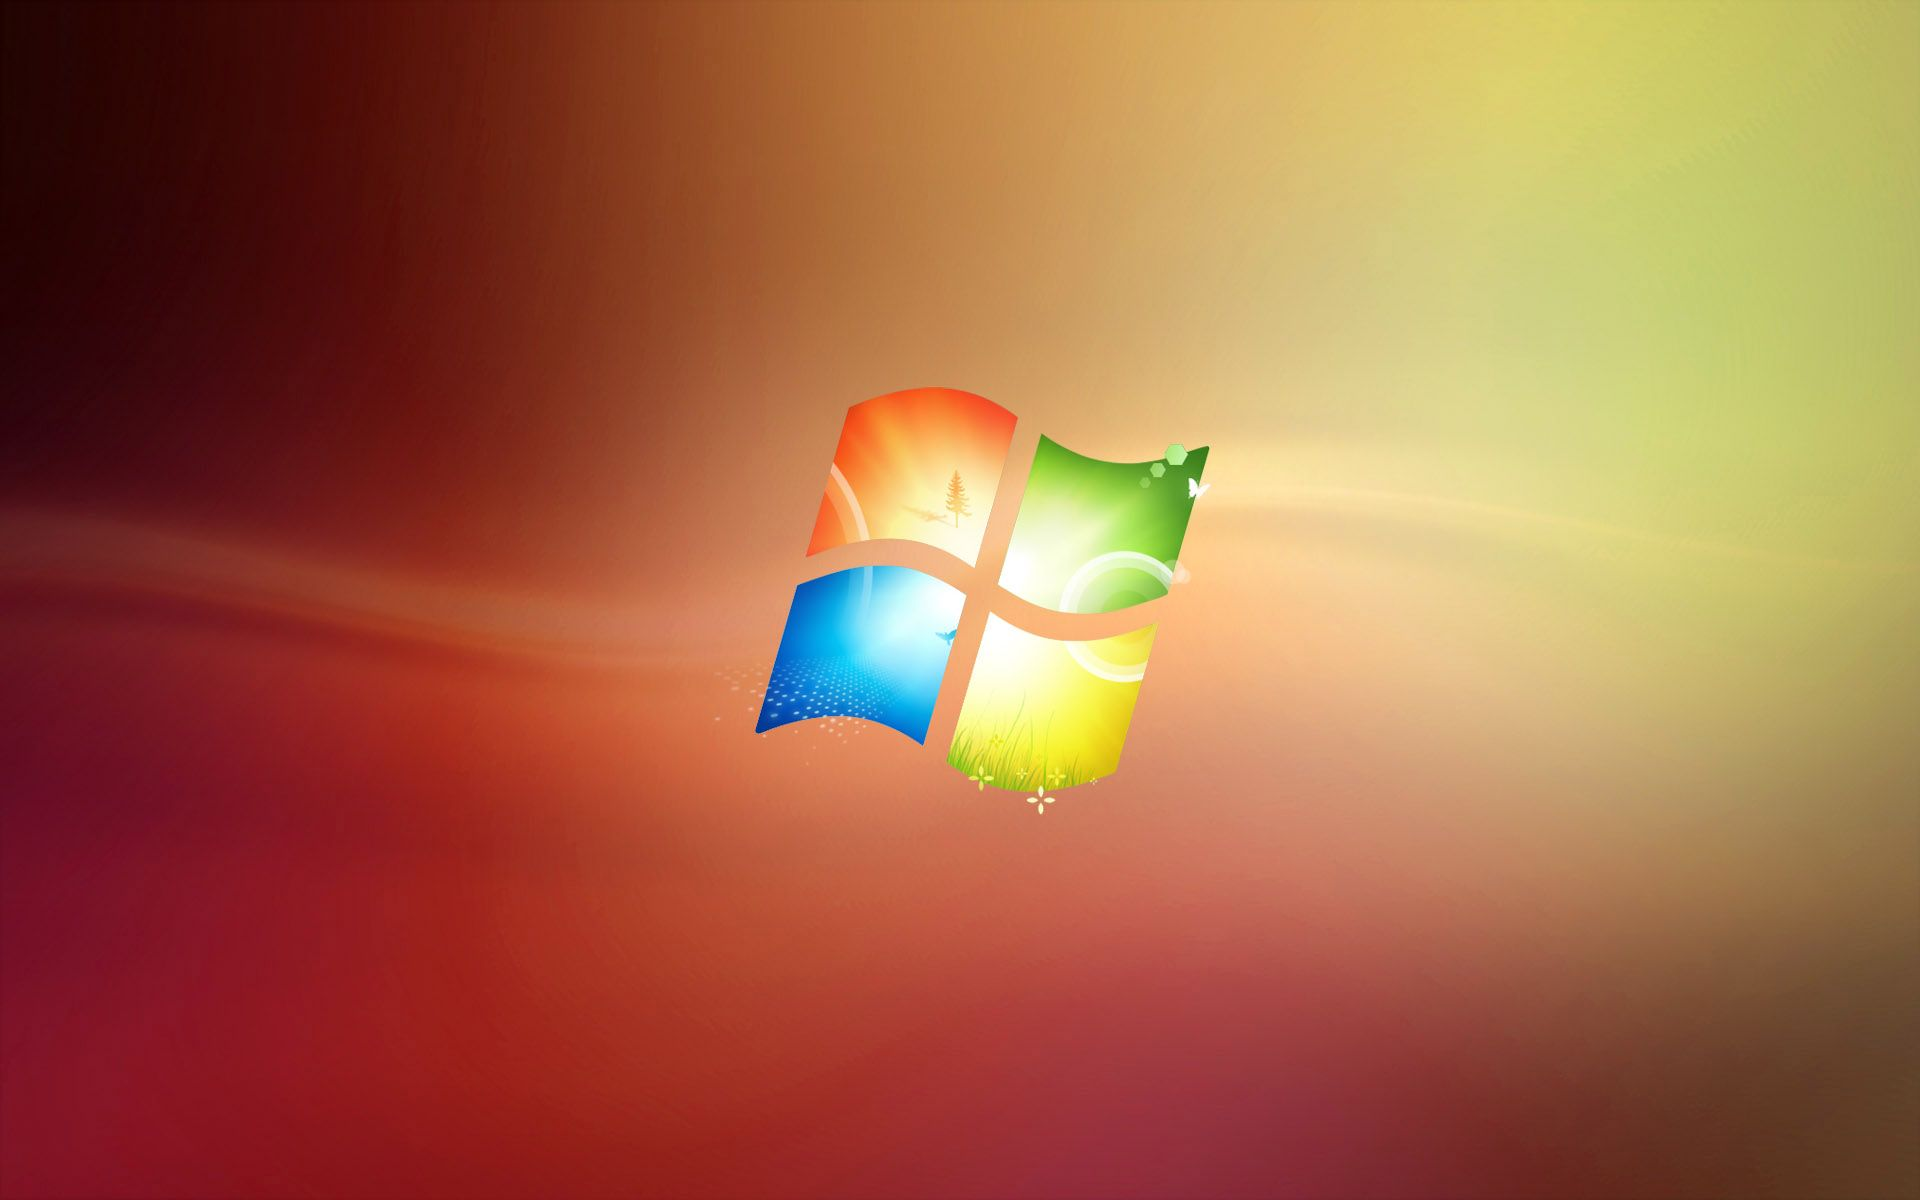 Windows 7 themes wallpaper wallpapersafari epic car wallpapers windows 7 themes wallpaper wallpapersafari voltagebd Choice Image